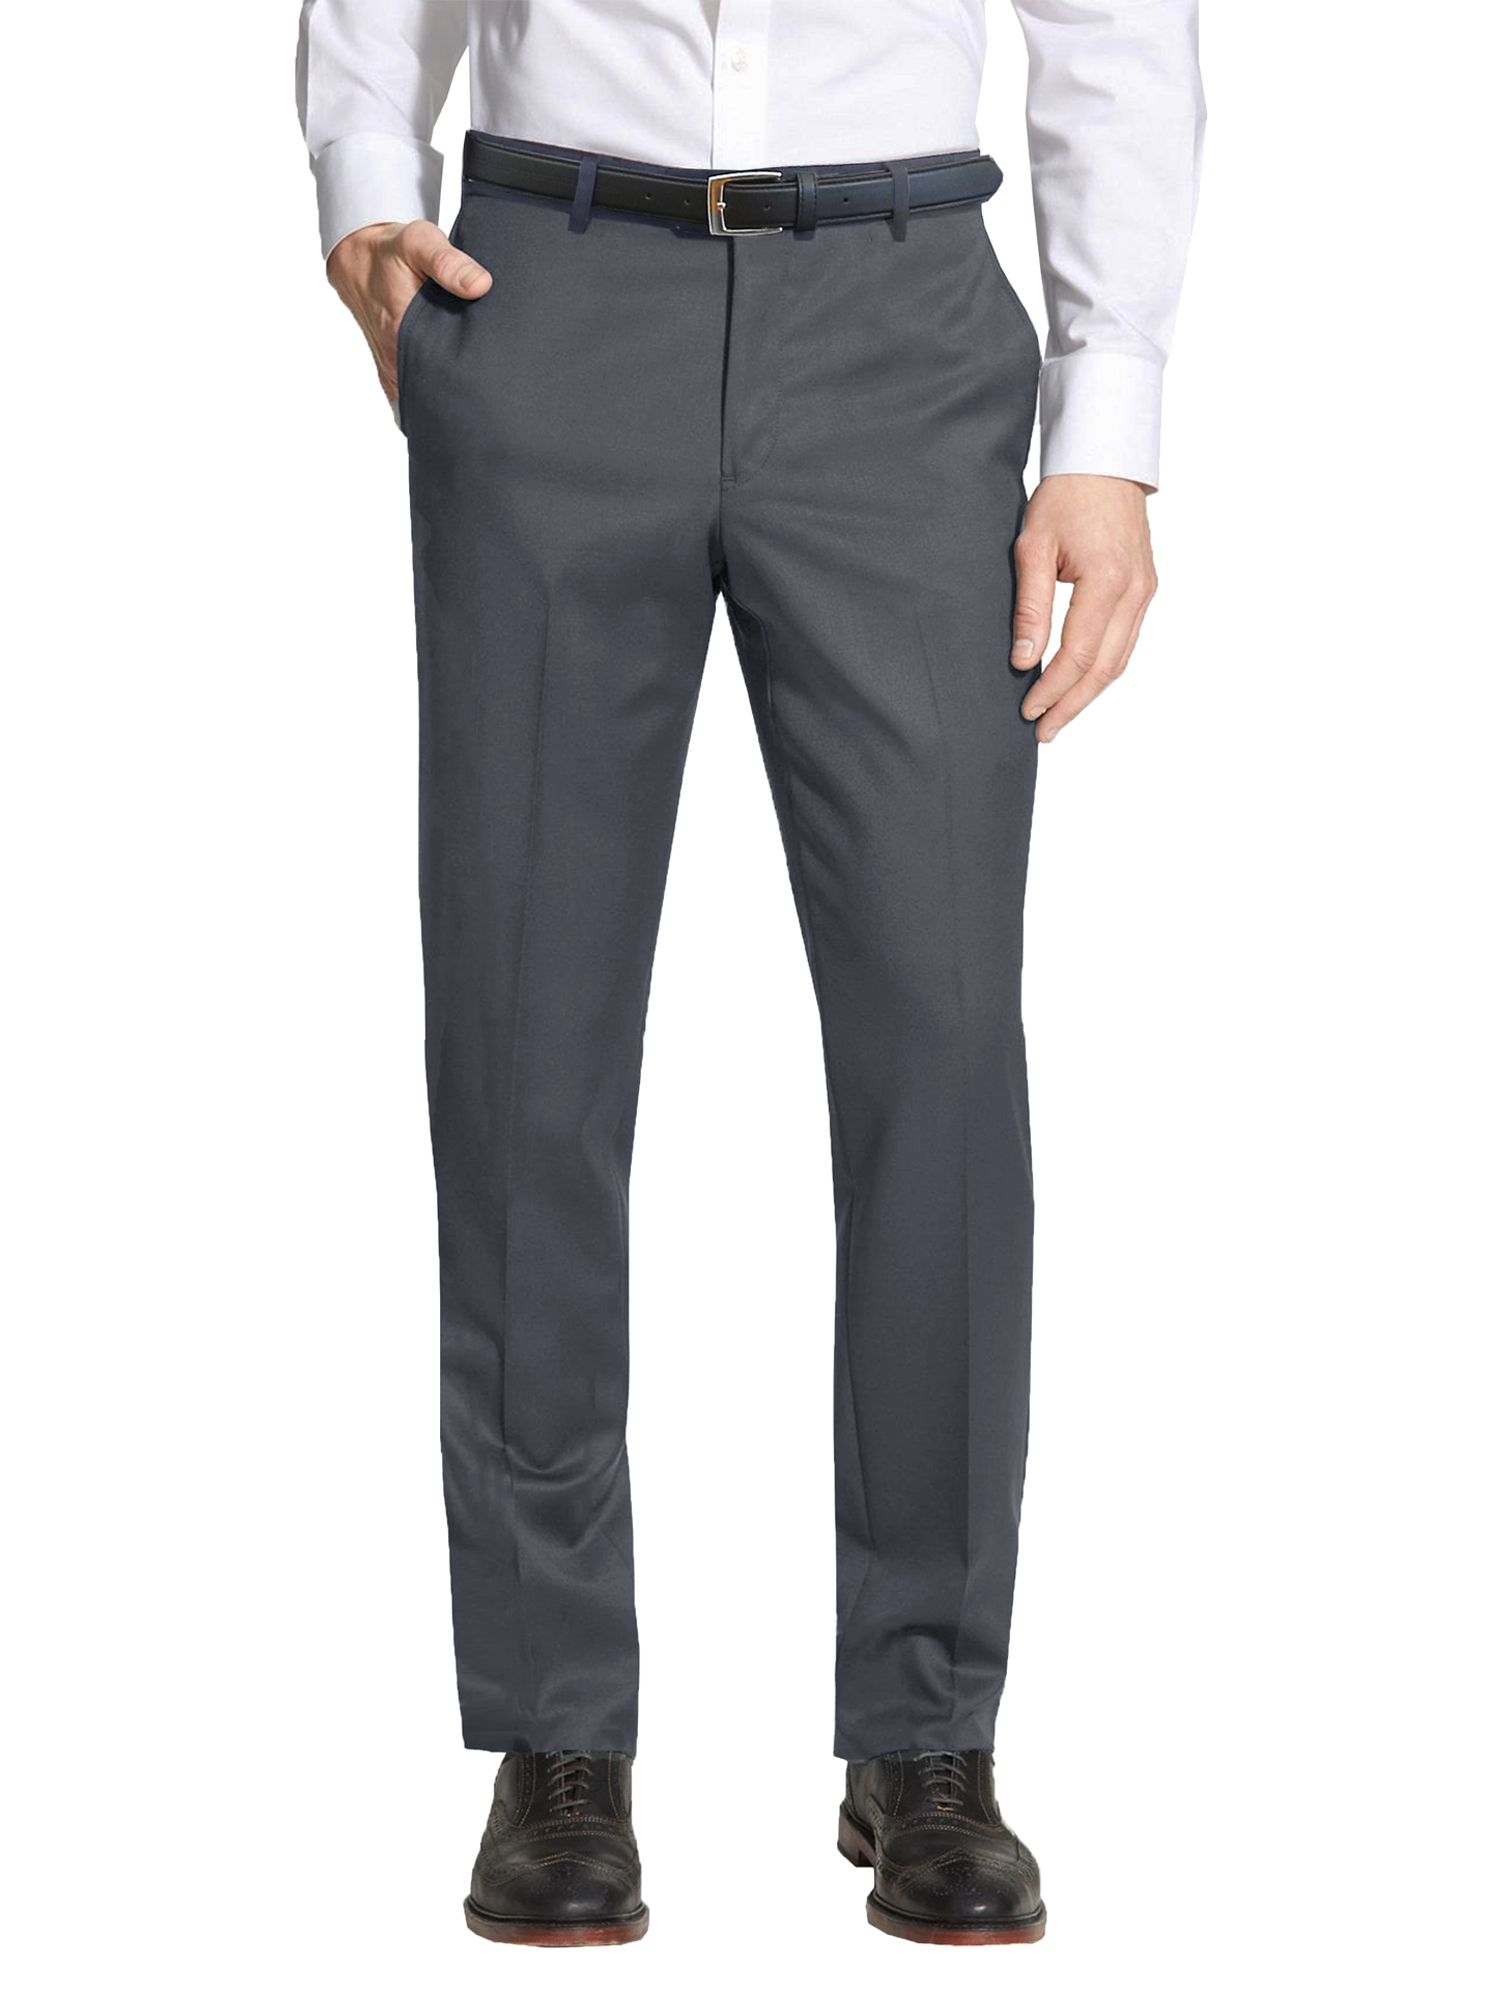 Men's Slim-Fit Belted Casual Dress Pants